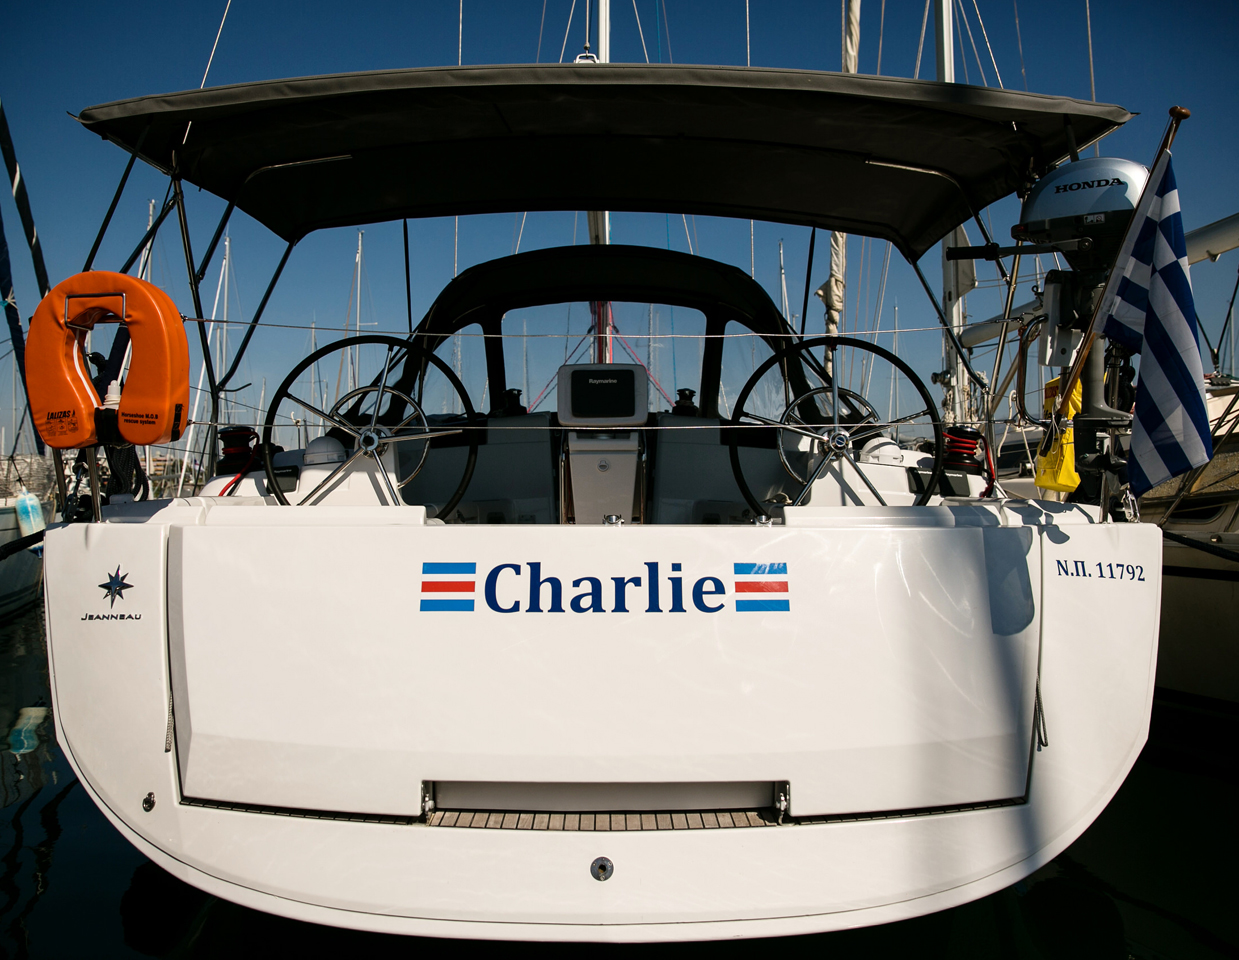 CHARLIE - Sailing Yacht for Charter in Greece